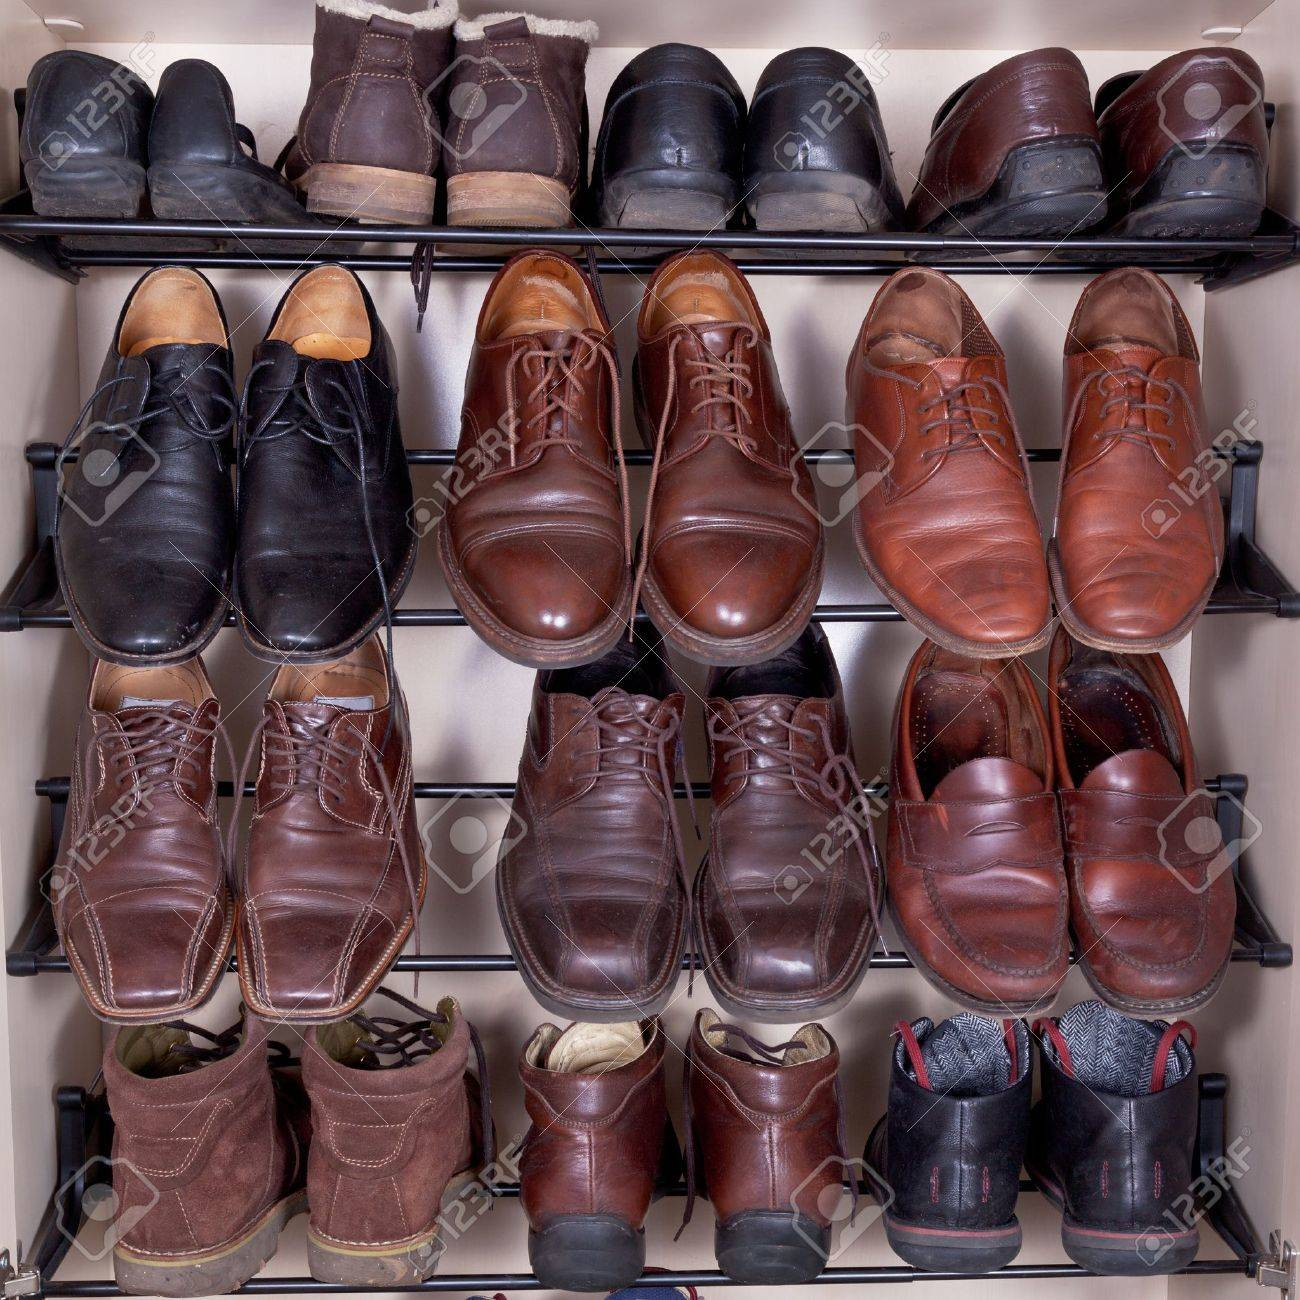 Shoes Cabinet With Used Leather Men's Slippers Stock Photo ...